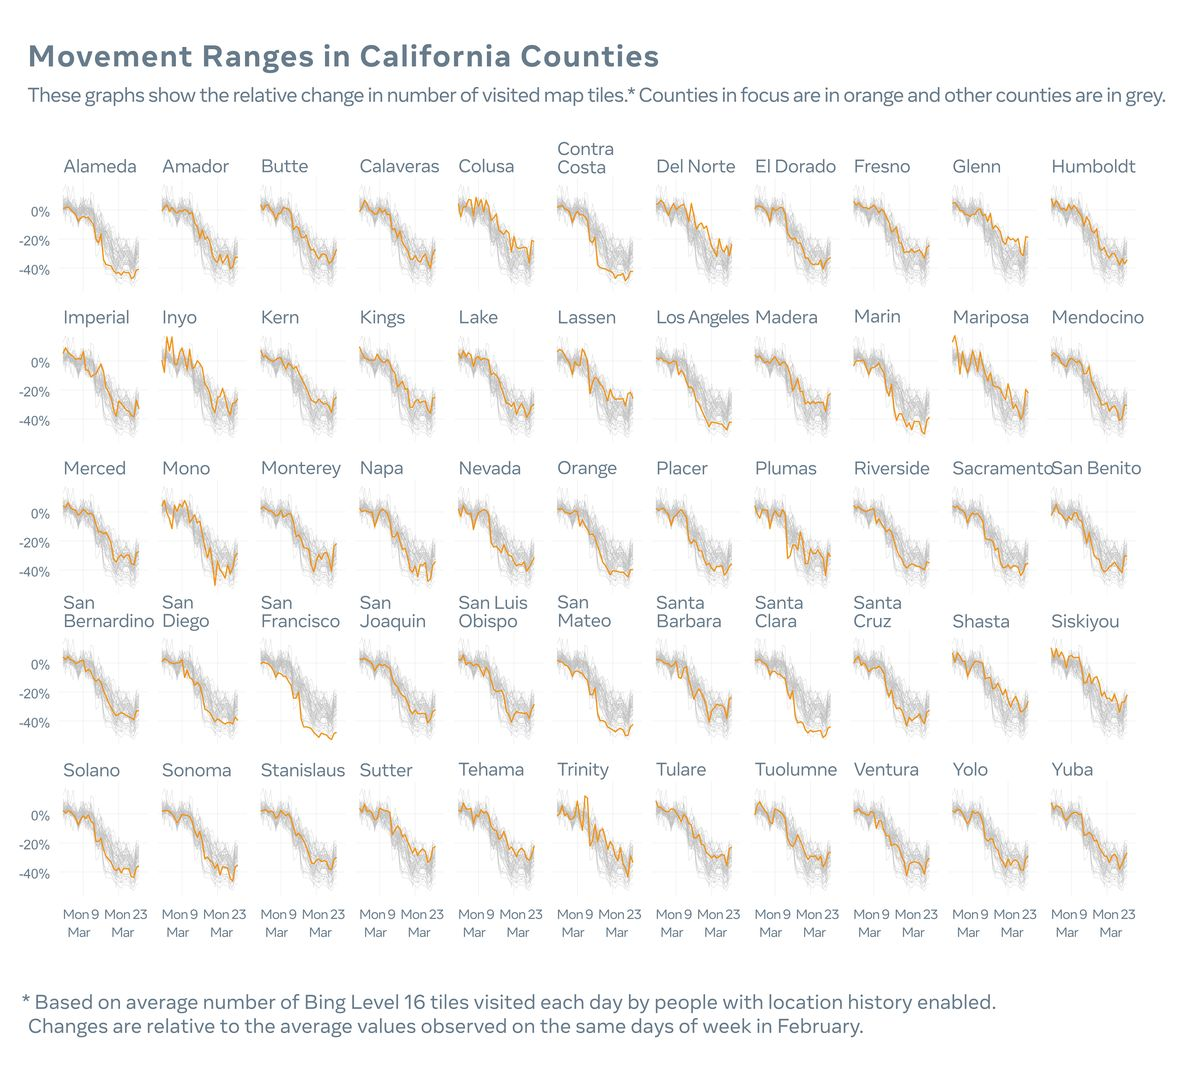 Movement ranges in California counties